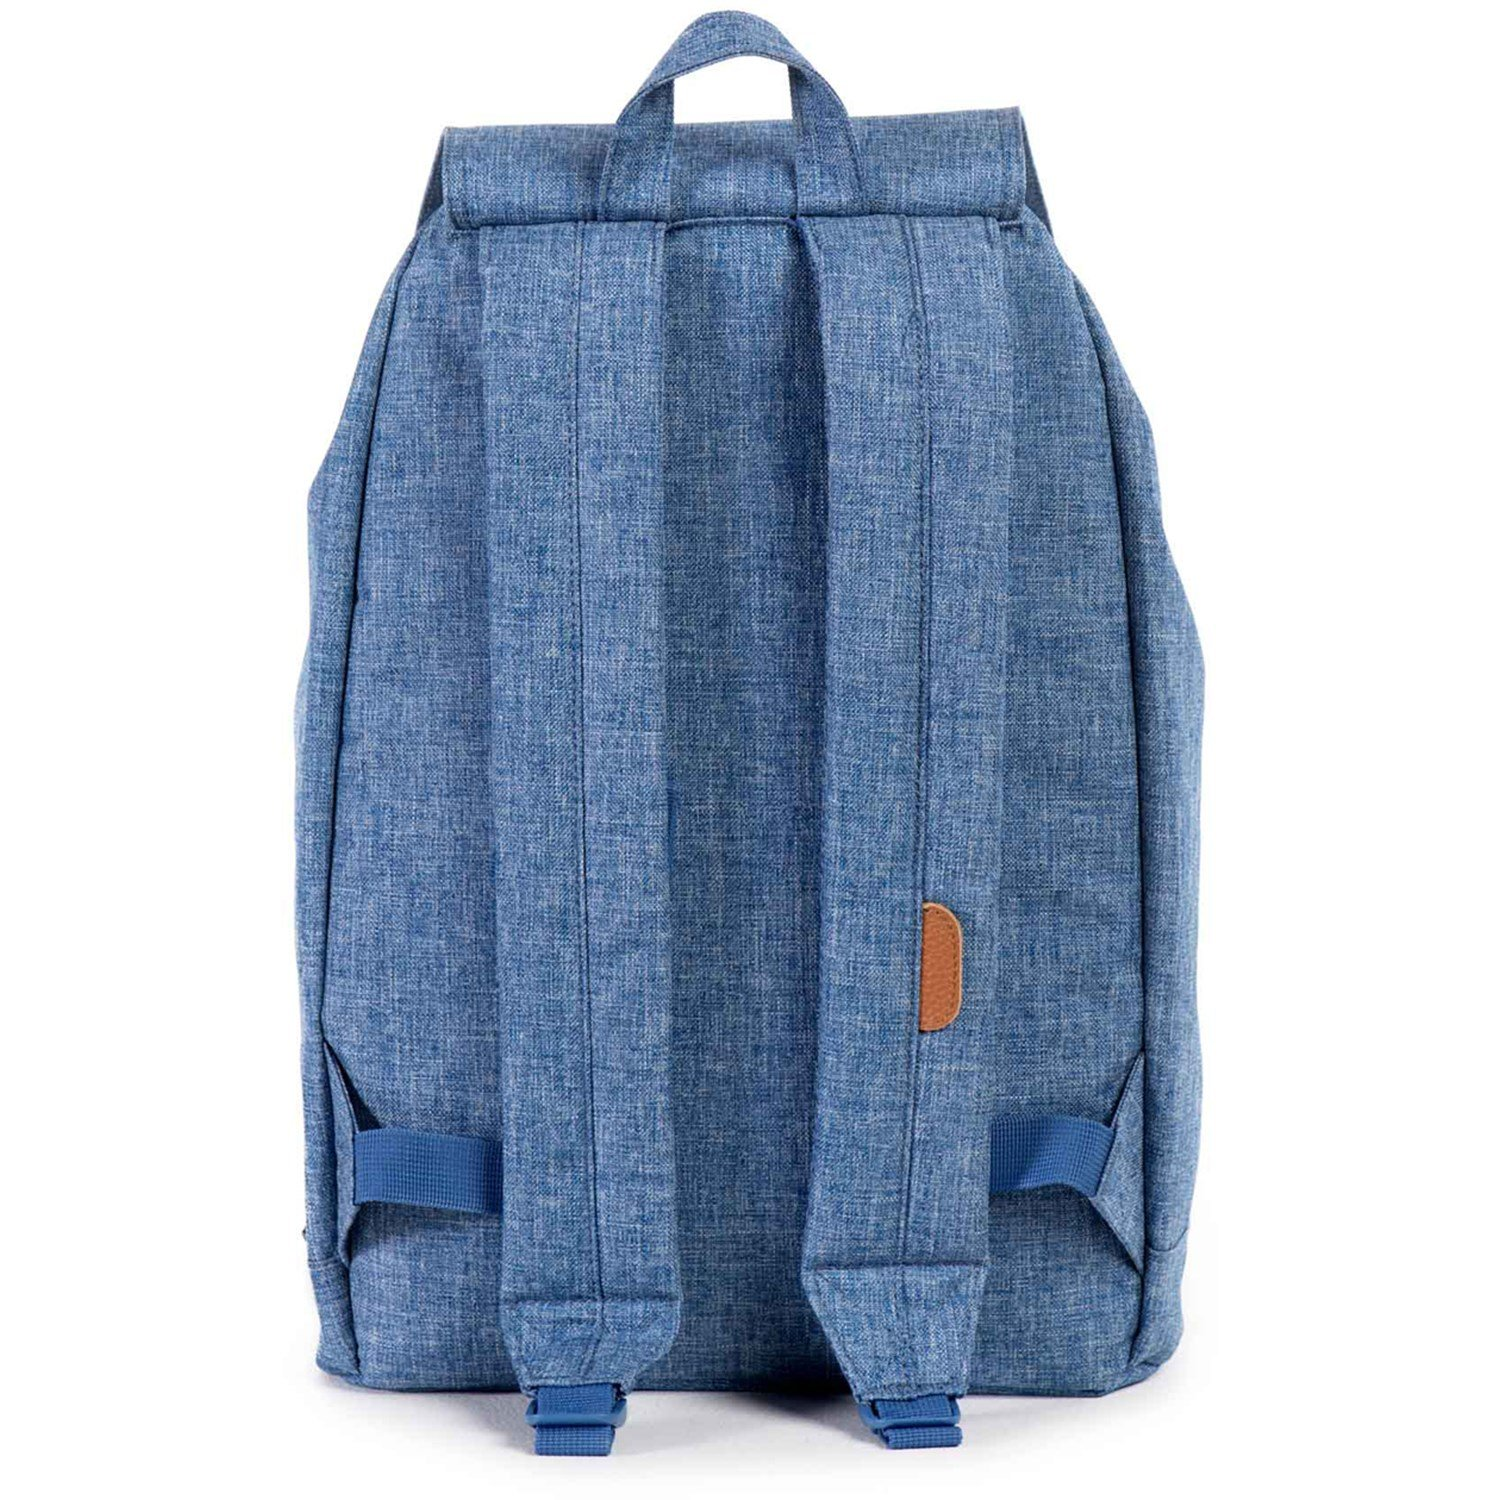 b65c49e88e1 Herschel Supply Co. Reid Backpack   evo